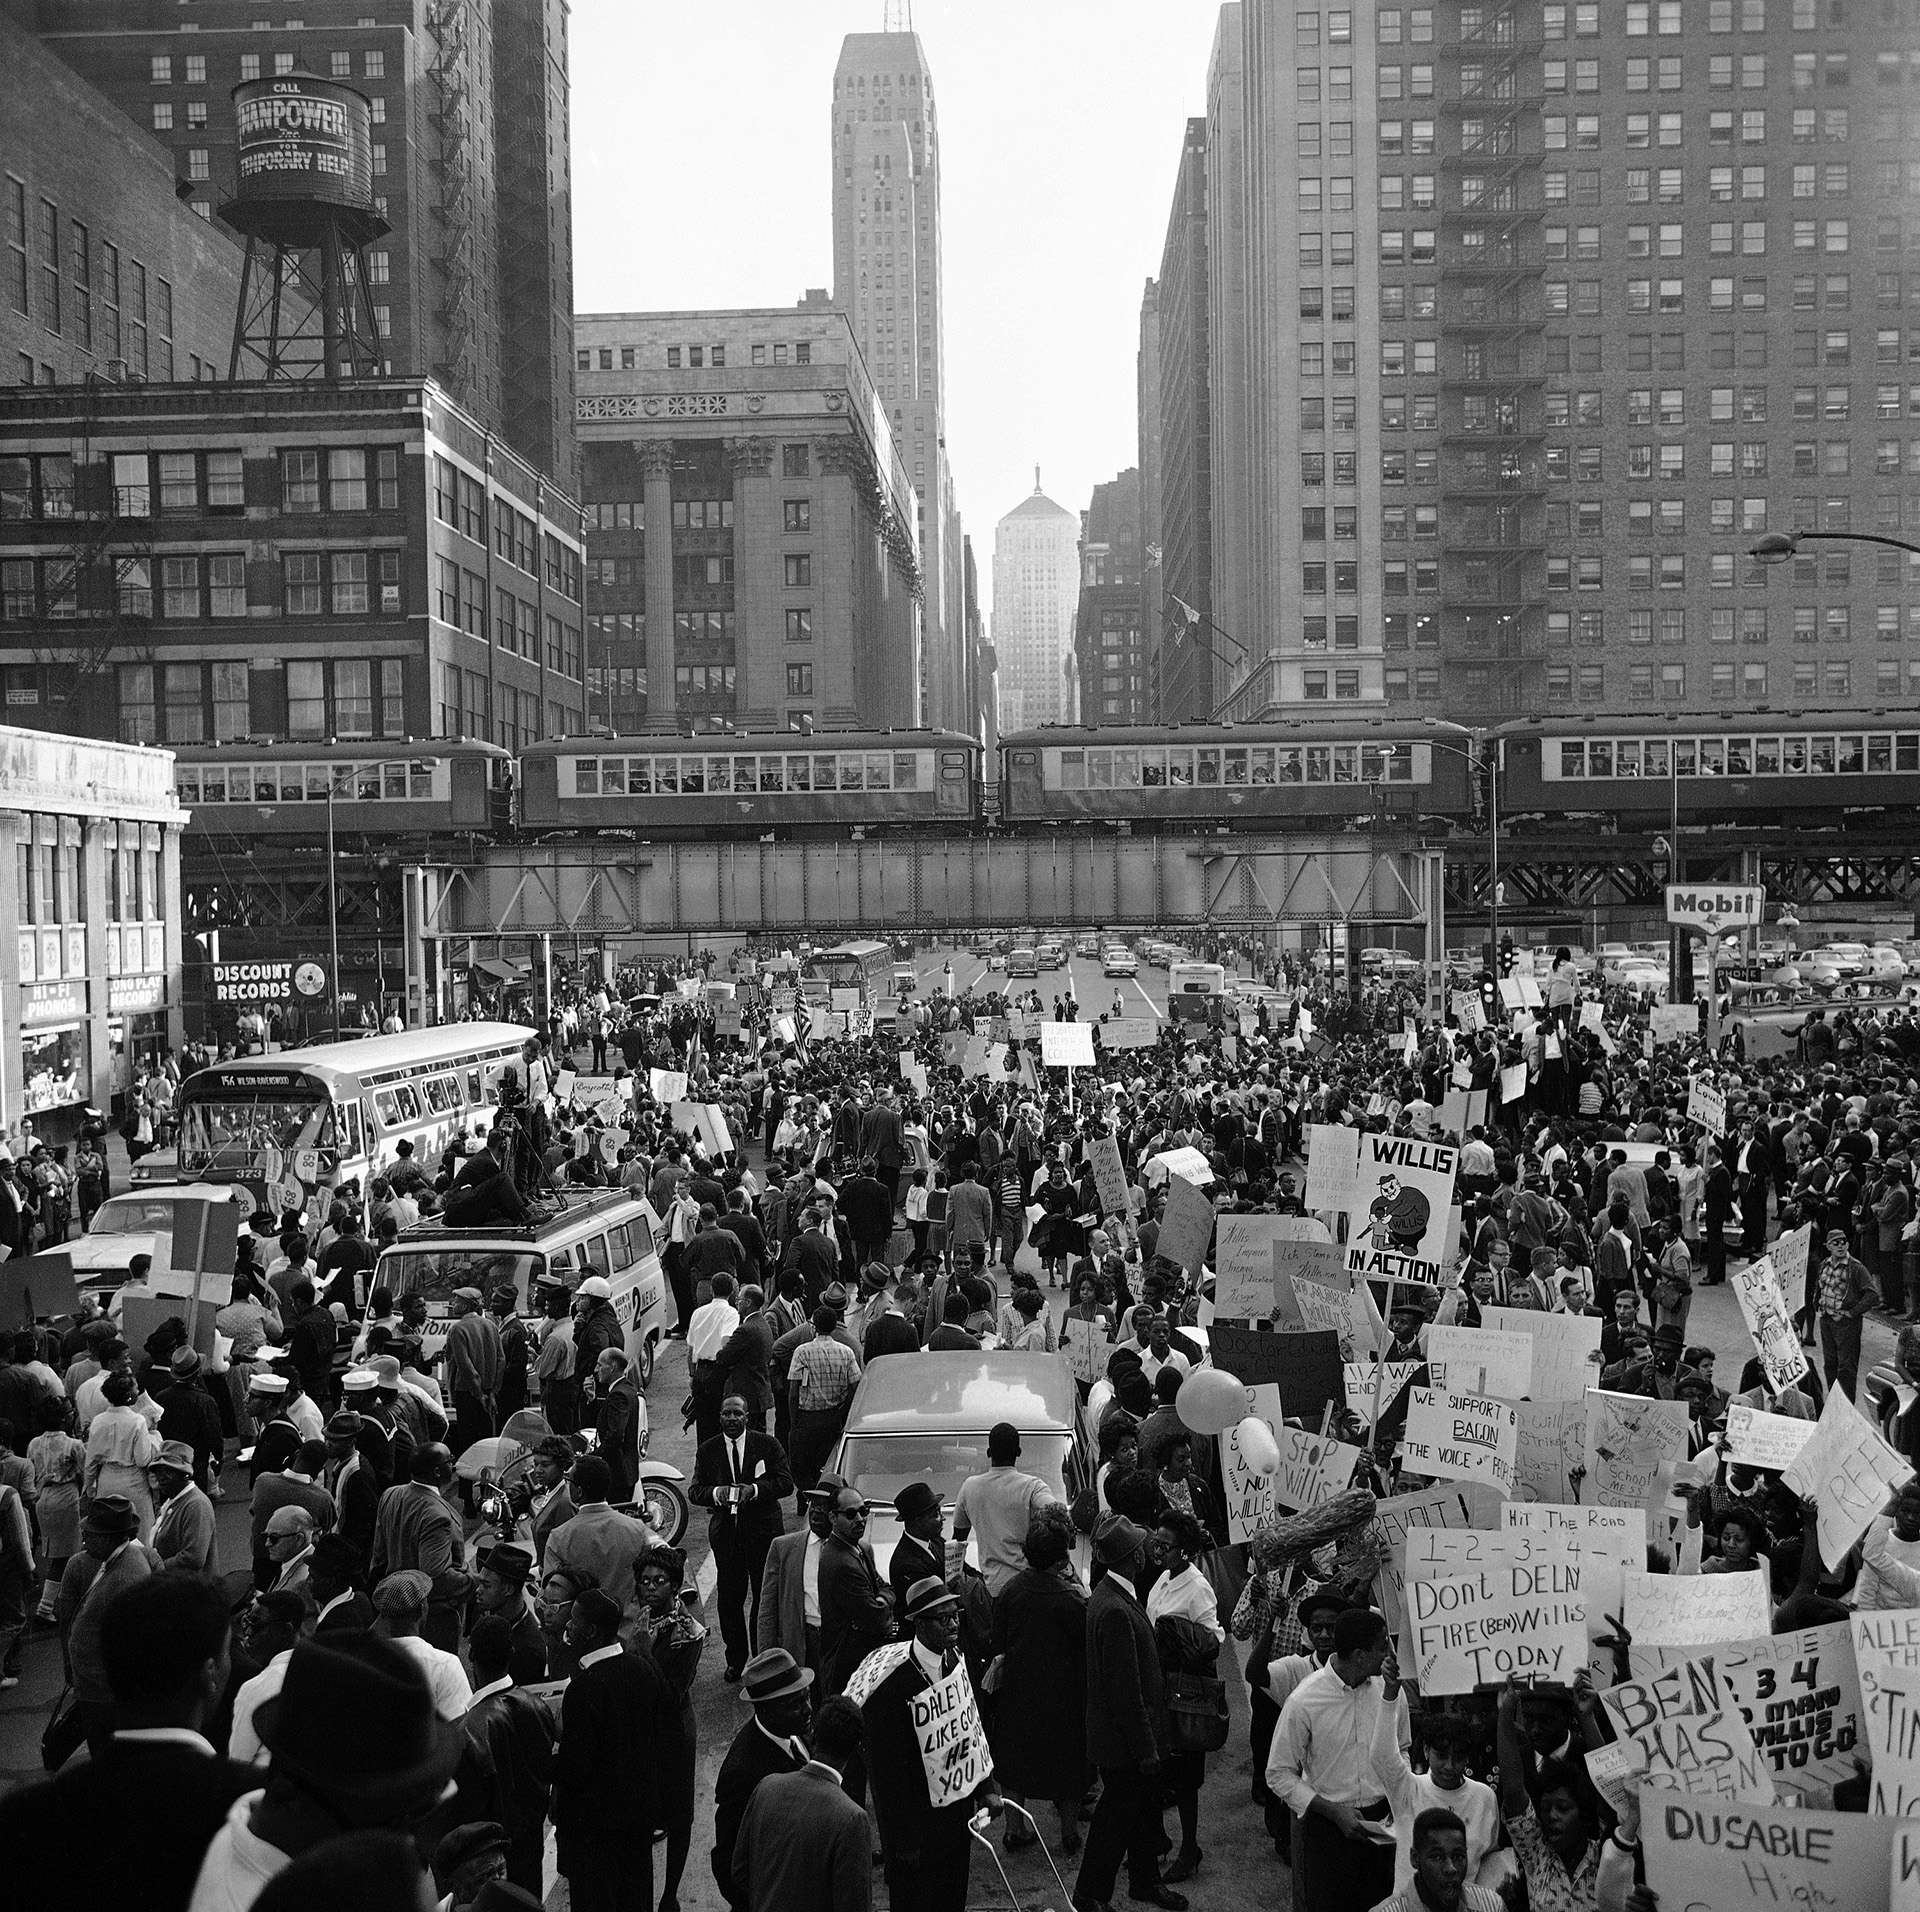 Crowd fills LaSalle Street between City Hall and the building housing Board of Education as thousands of demonstrators marched in Chicago on October 22, 1963. (Credit: Paul Cannon/AP Photo)